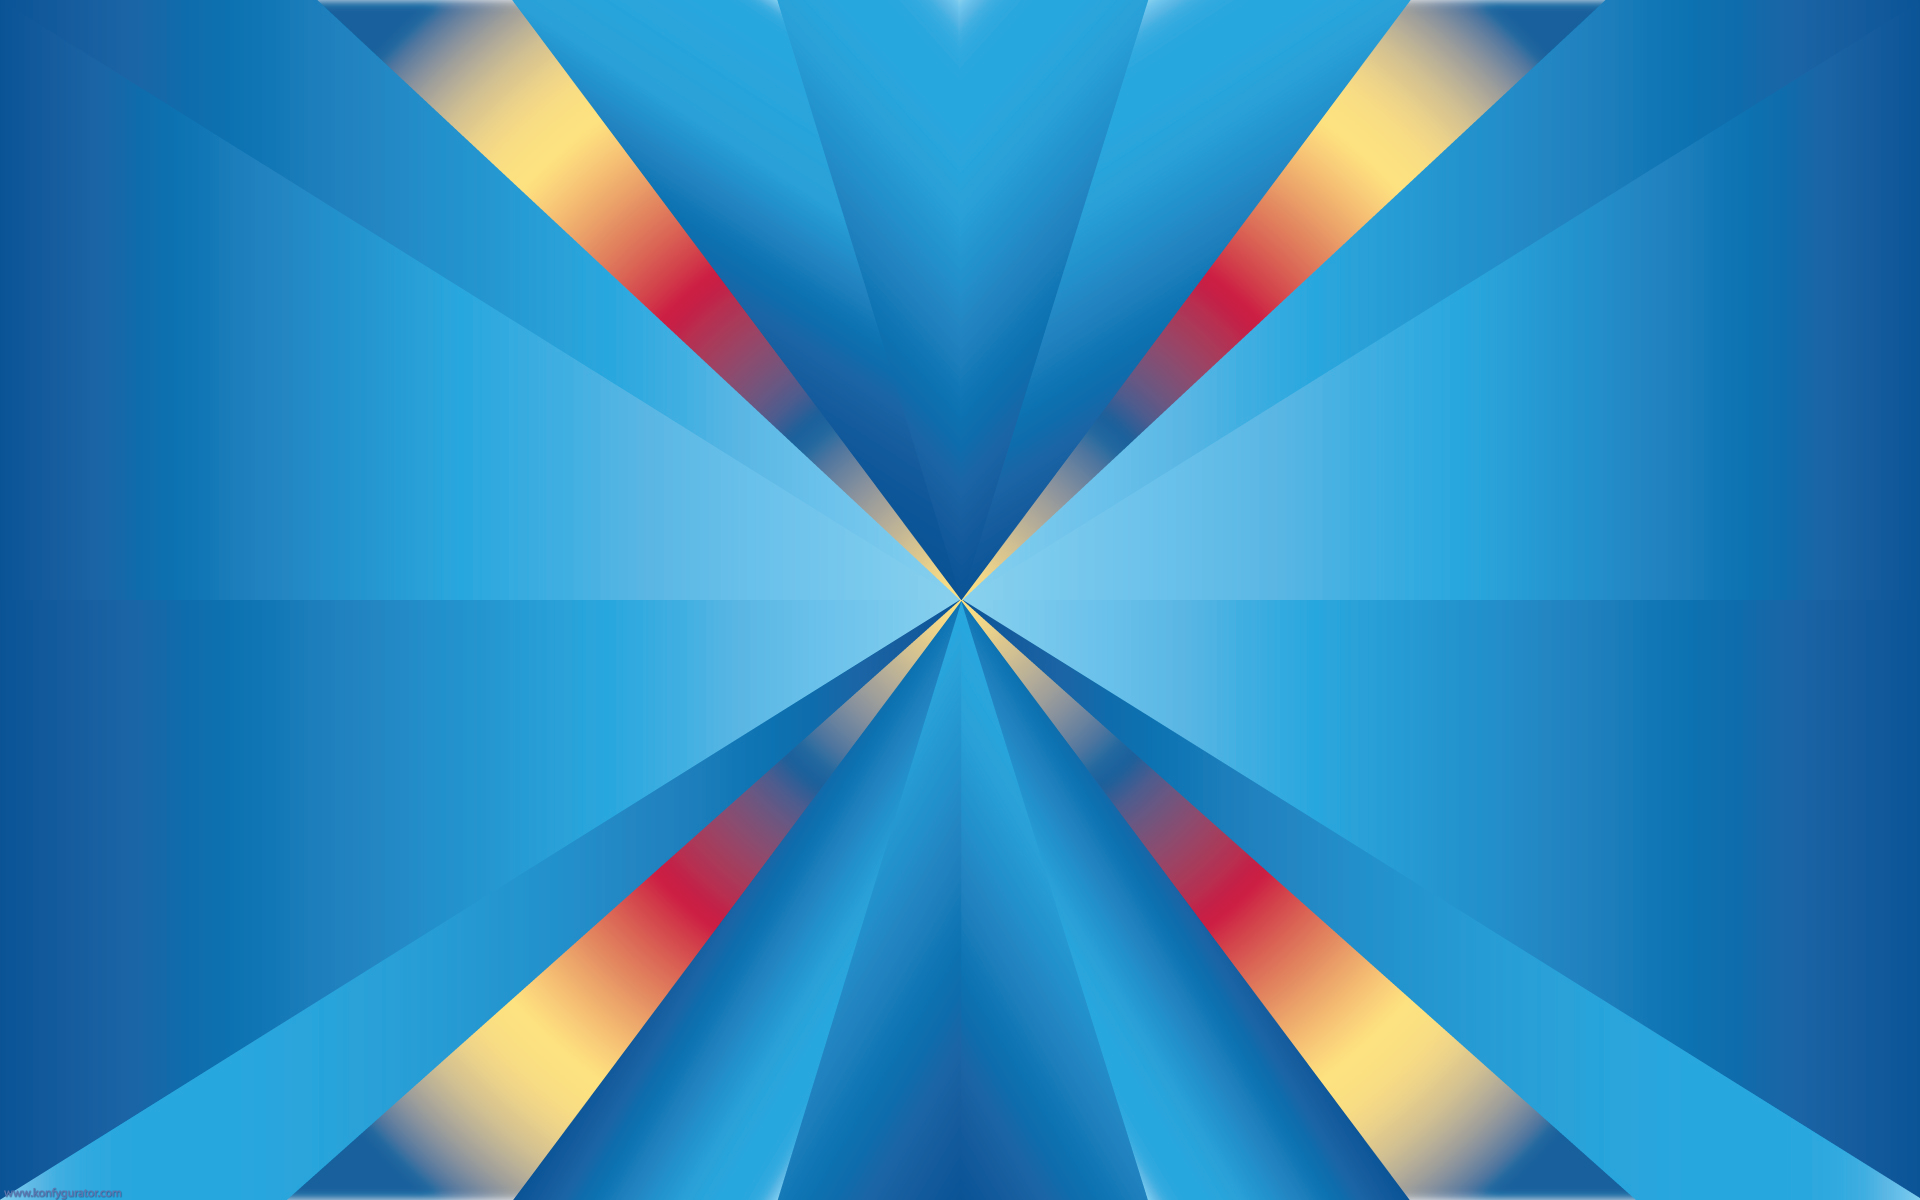 HD Wallpapers - 3D & Abstract - colorful, triangles, center